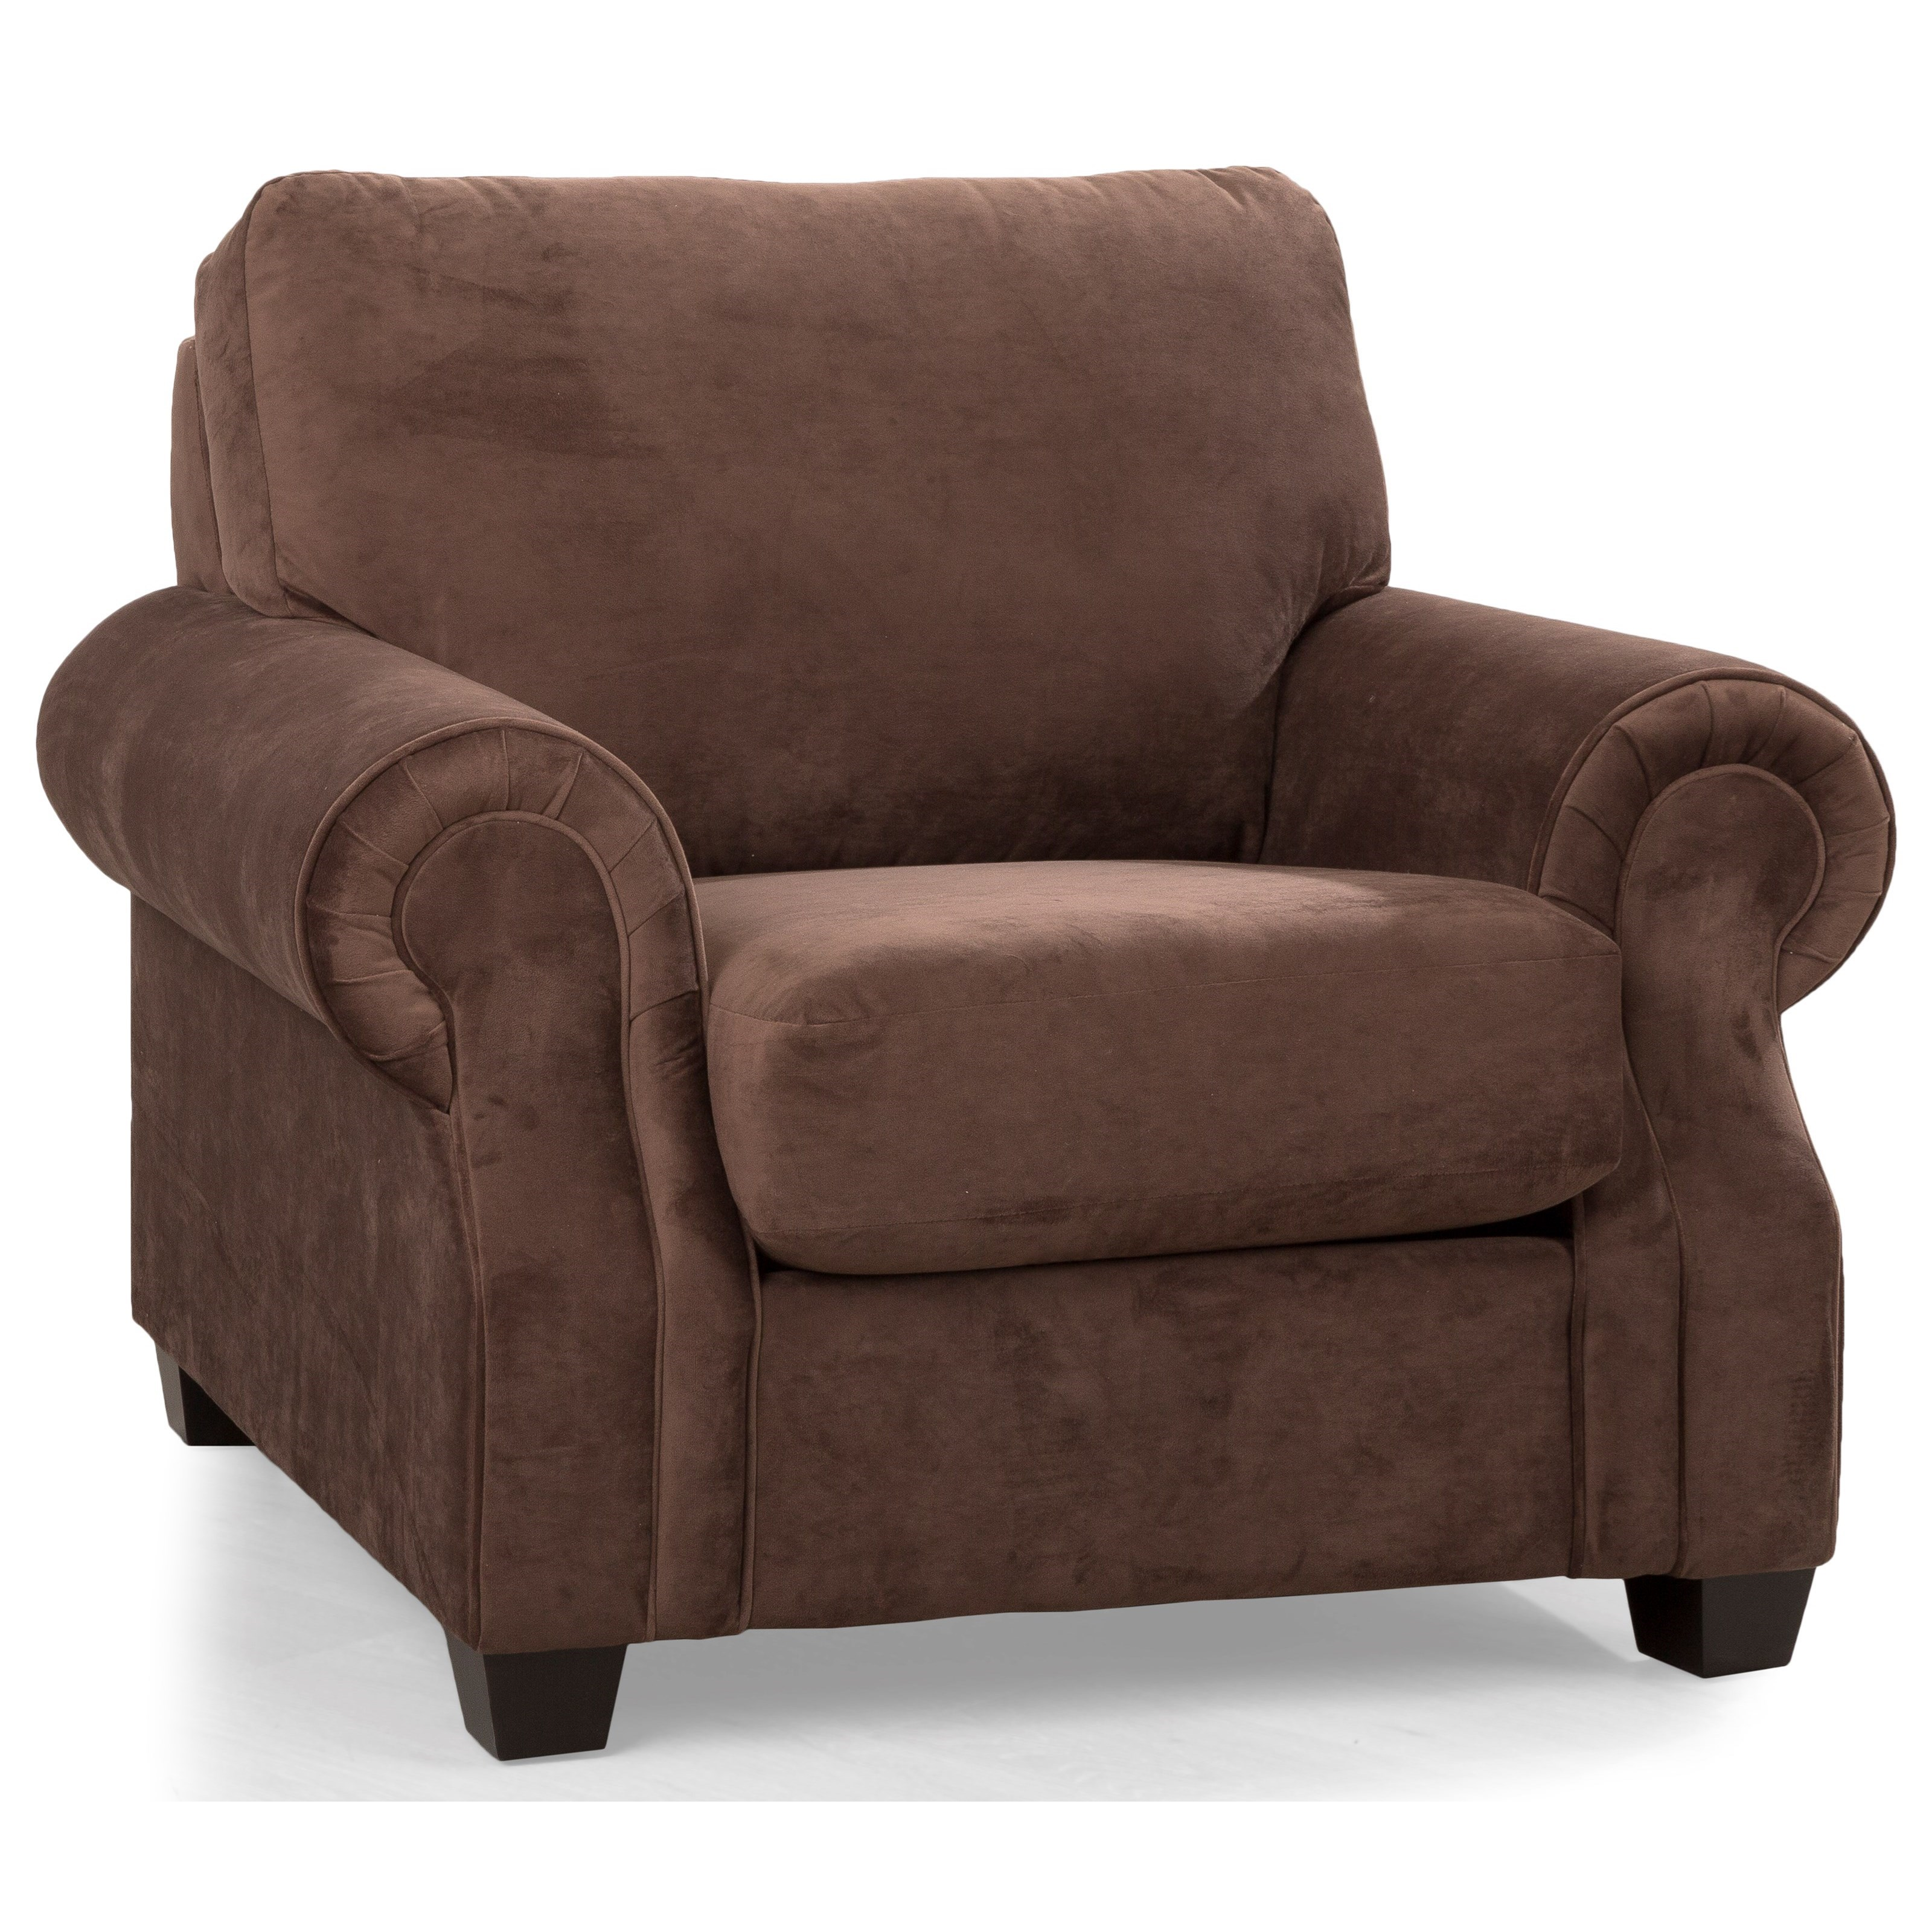 2279 Chair by Decor-Rest at Reid's Furniture